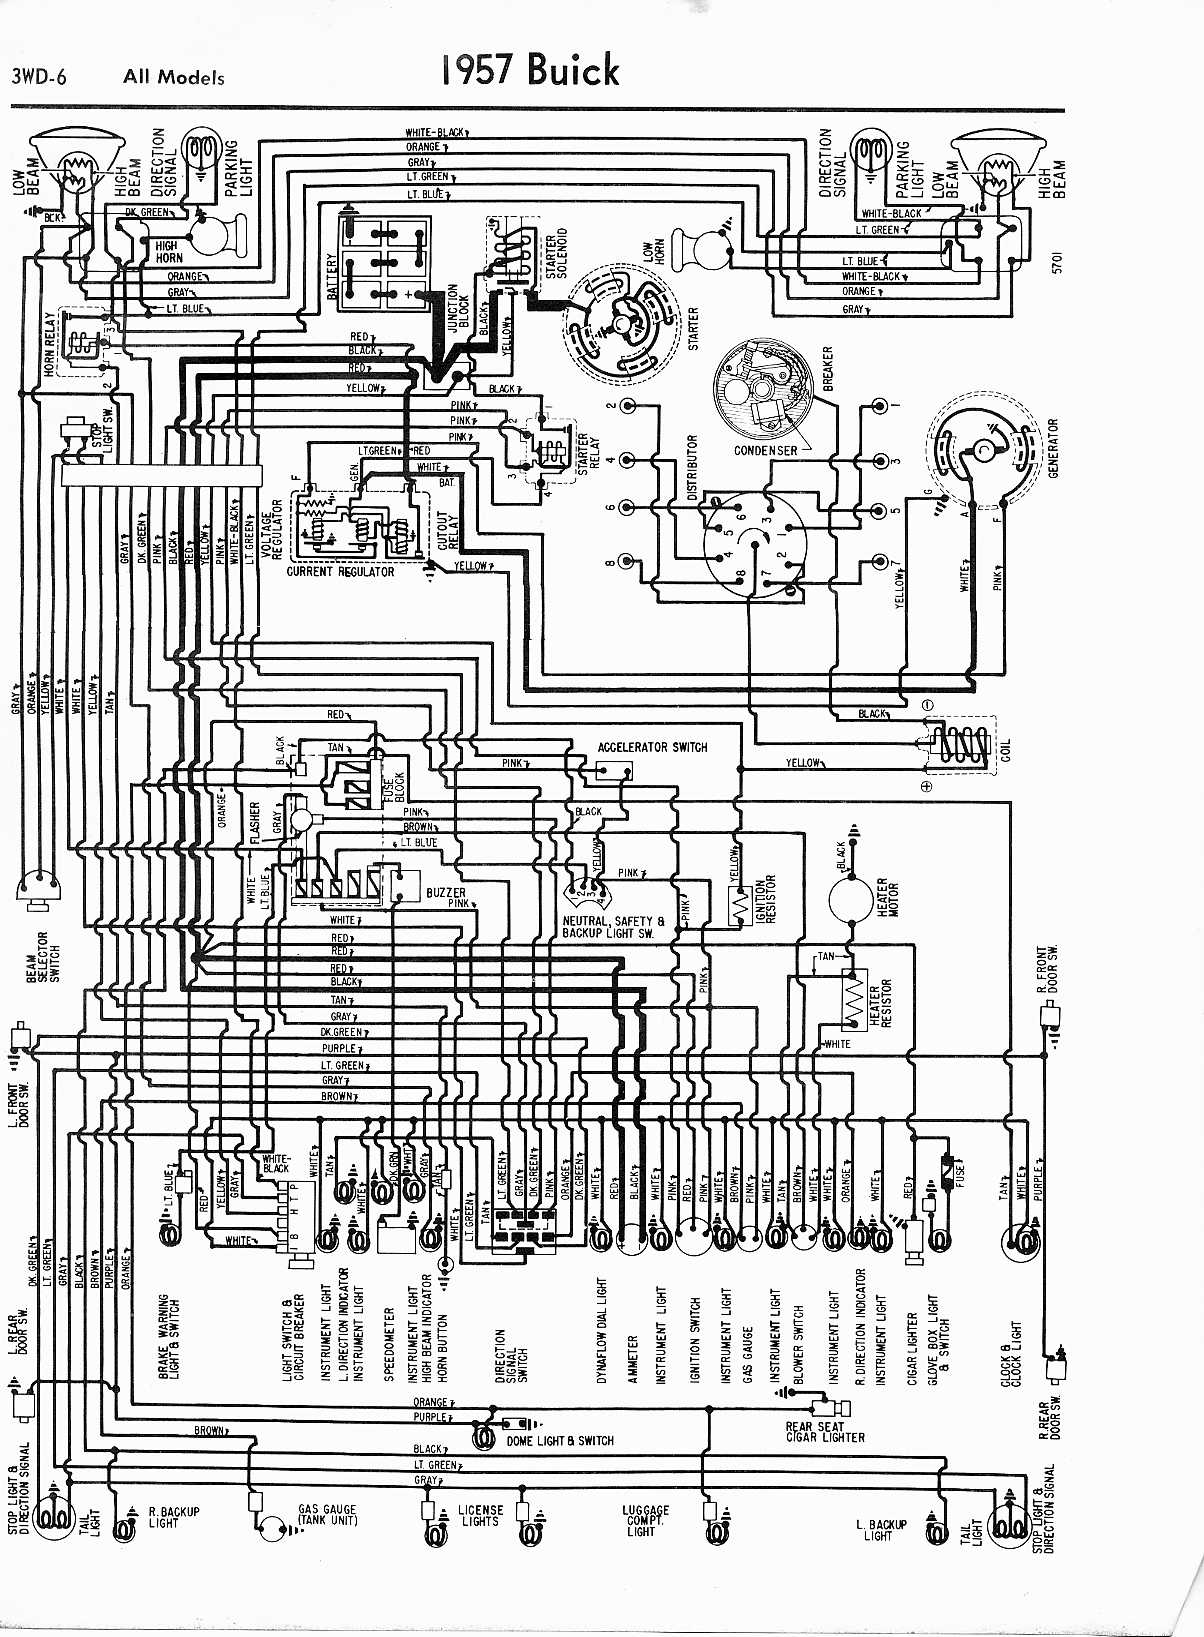 buick 455 wiring diagram enthusiast wiring diagrams \u2022 1973 buick century gs 455 1972 buick 455 wiring diagram basic guide wiring diagram u2022 rh needpixies com 2004 buick lesabre wiring diagram buick century wiring diagram